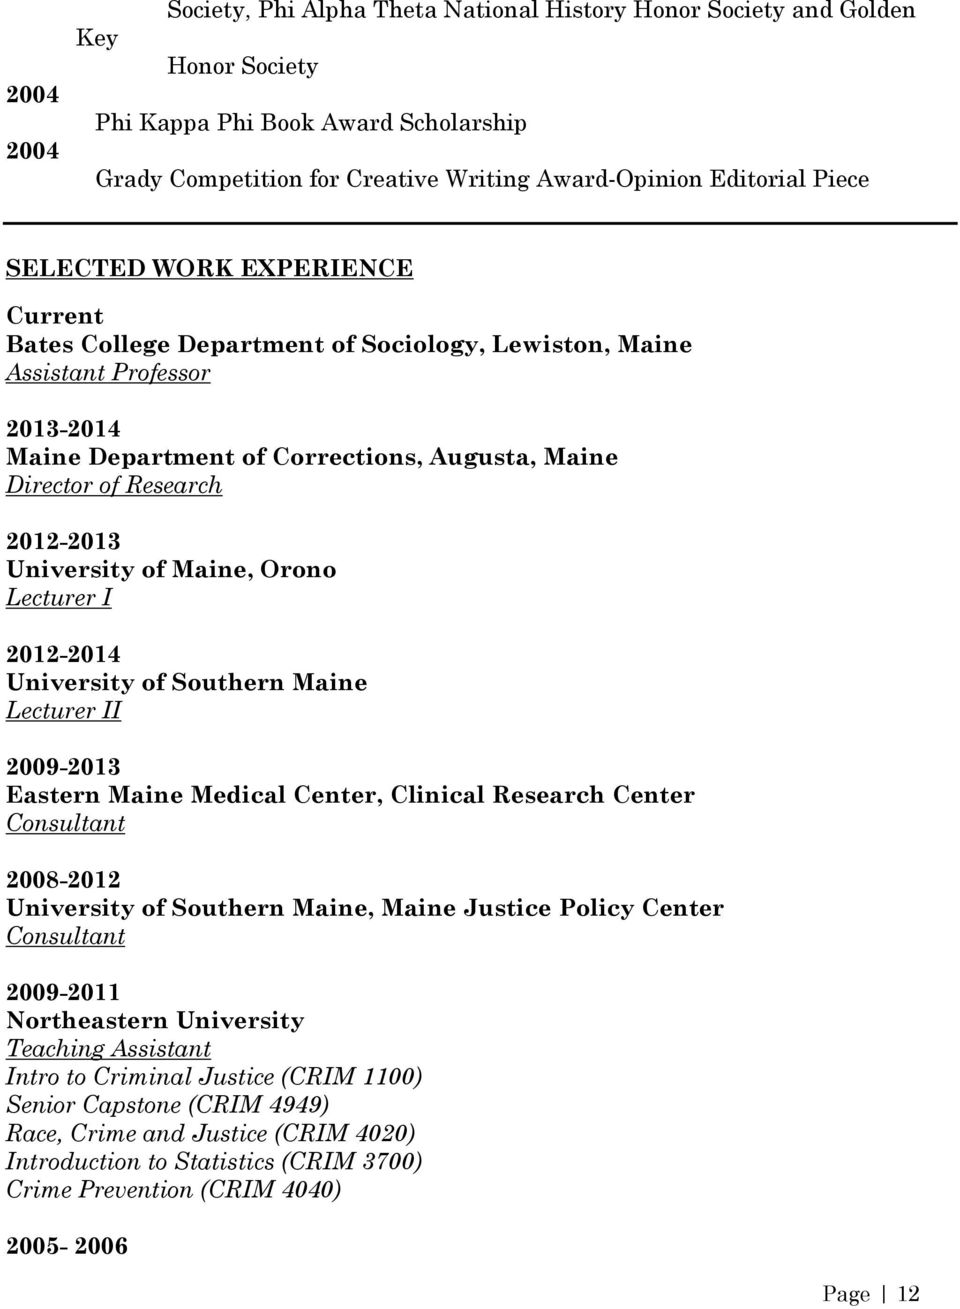 2012-2013 University of Maine, Orono Lecturer I 2012-2014 University of Southern Maine Lecturer II 2009-2013 Eastern Maine Medical Center, Clinical Research Center Consultant 2008-2012 University of